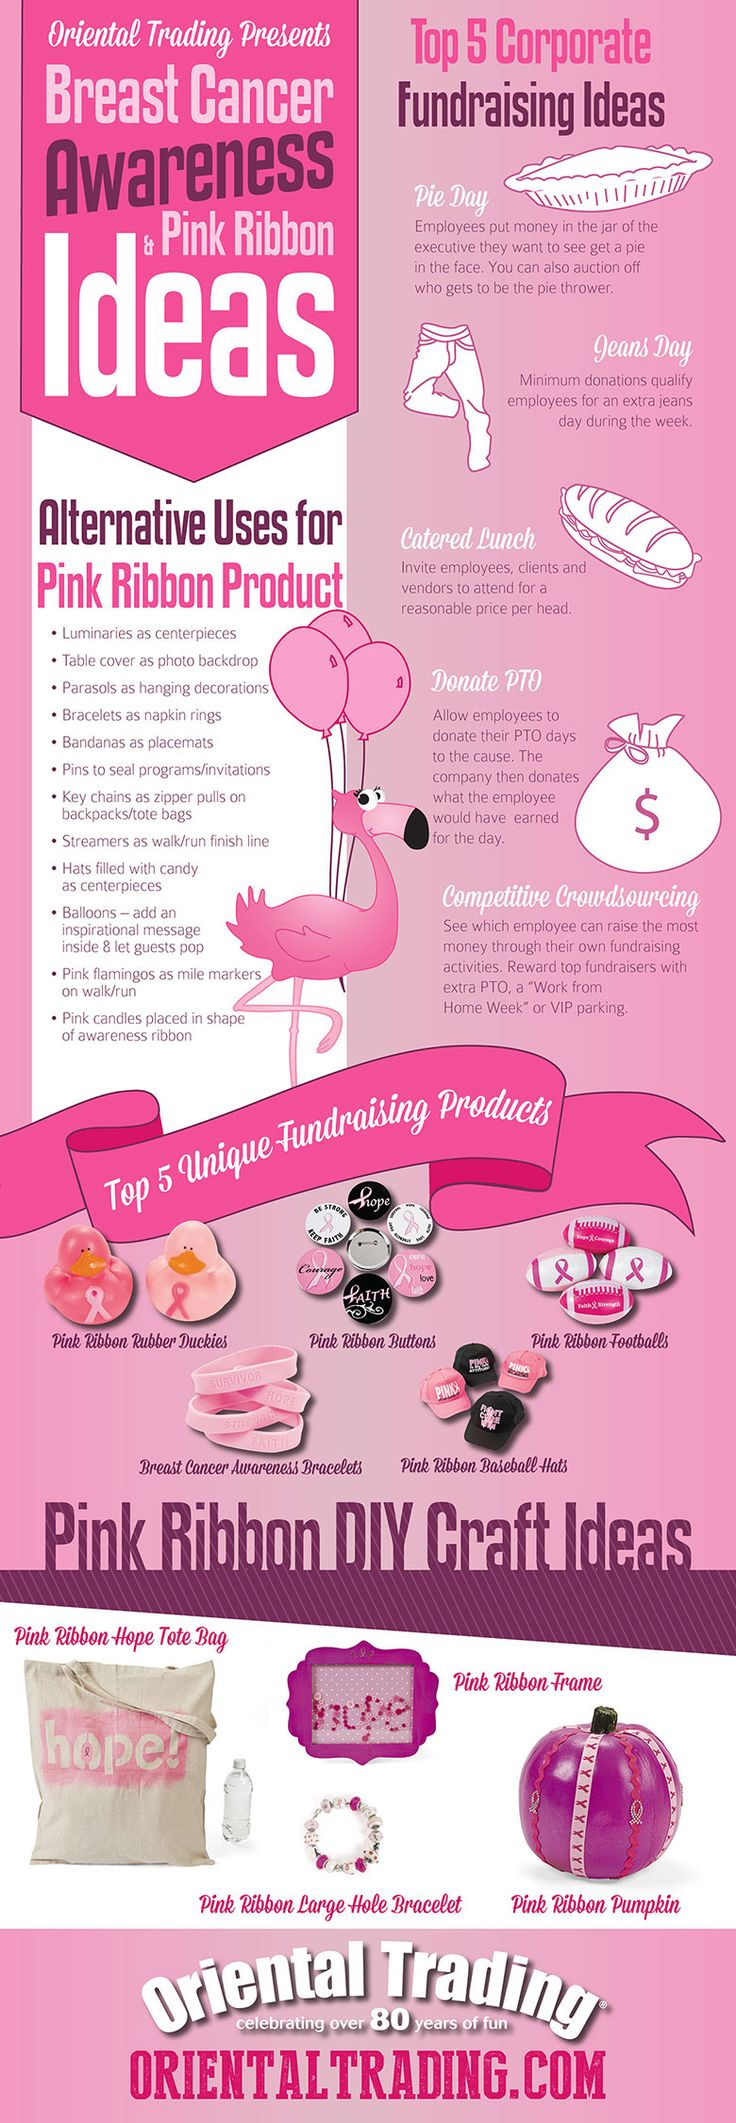 Breast Cancer Awareness Fundraising Ideas Infographic by OrientalTrading.com